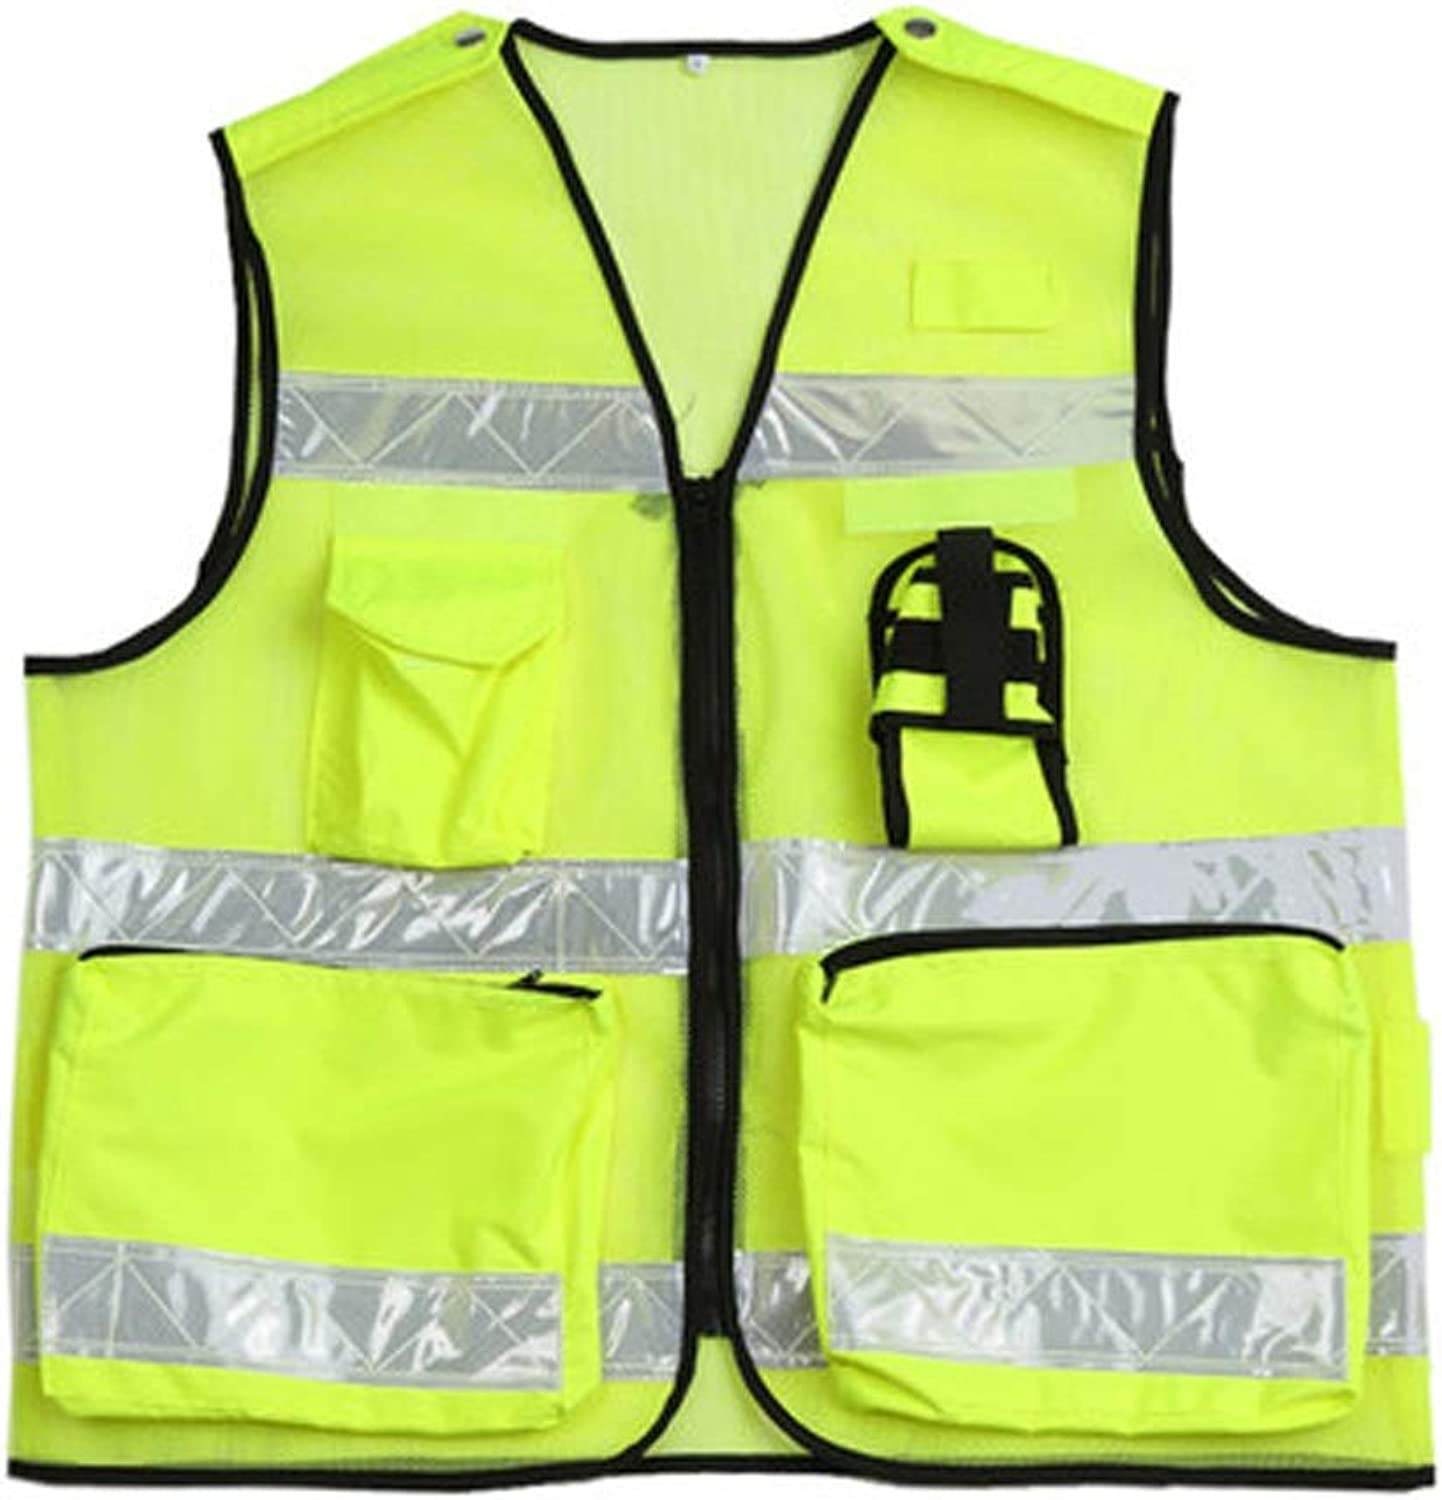 RMJAI Vests Yellow Reflective Safety Vest with Pockets, Bright Construction Vest with Reflective Strips,Made from Breathable and Neon Yellow Mesh Fabric,High Visibility Vest Reflective Vests